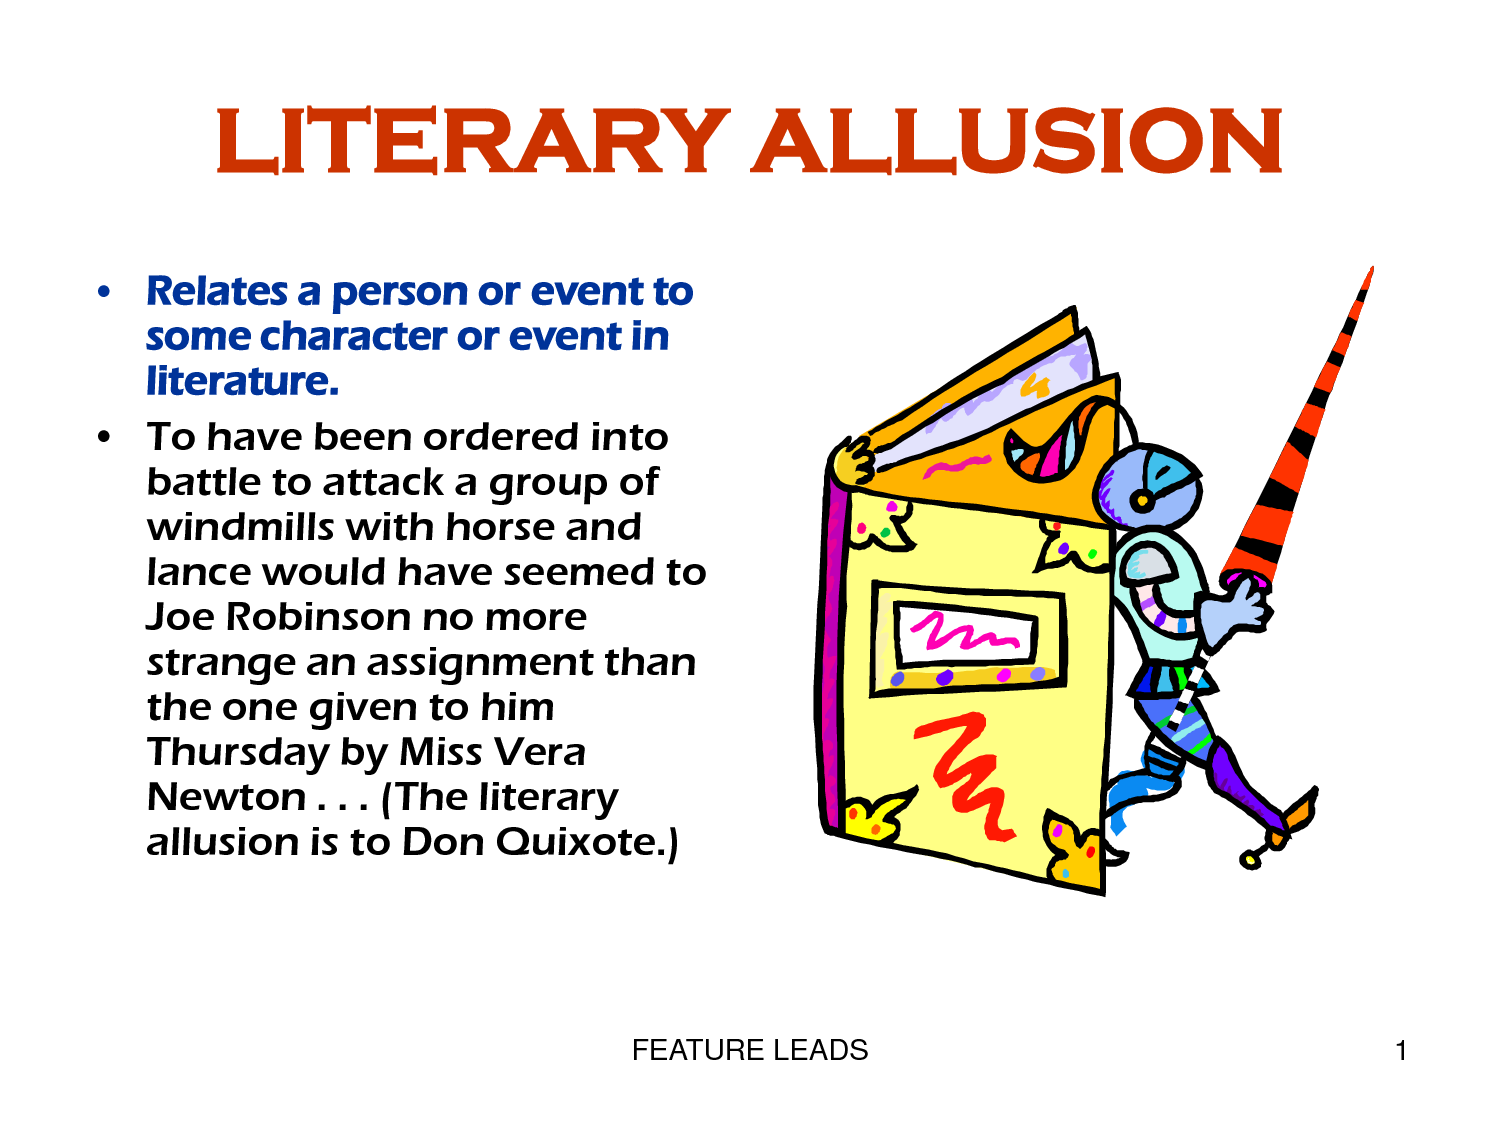 An Allusion Is A Reference To An Event Or Someone In